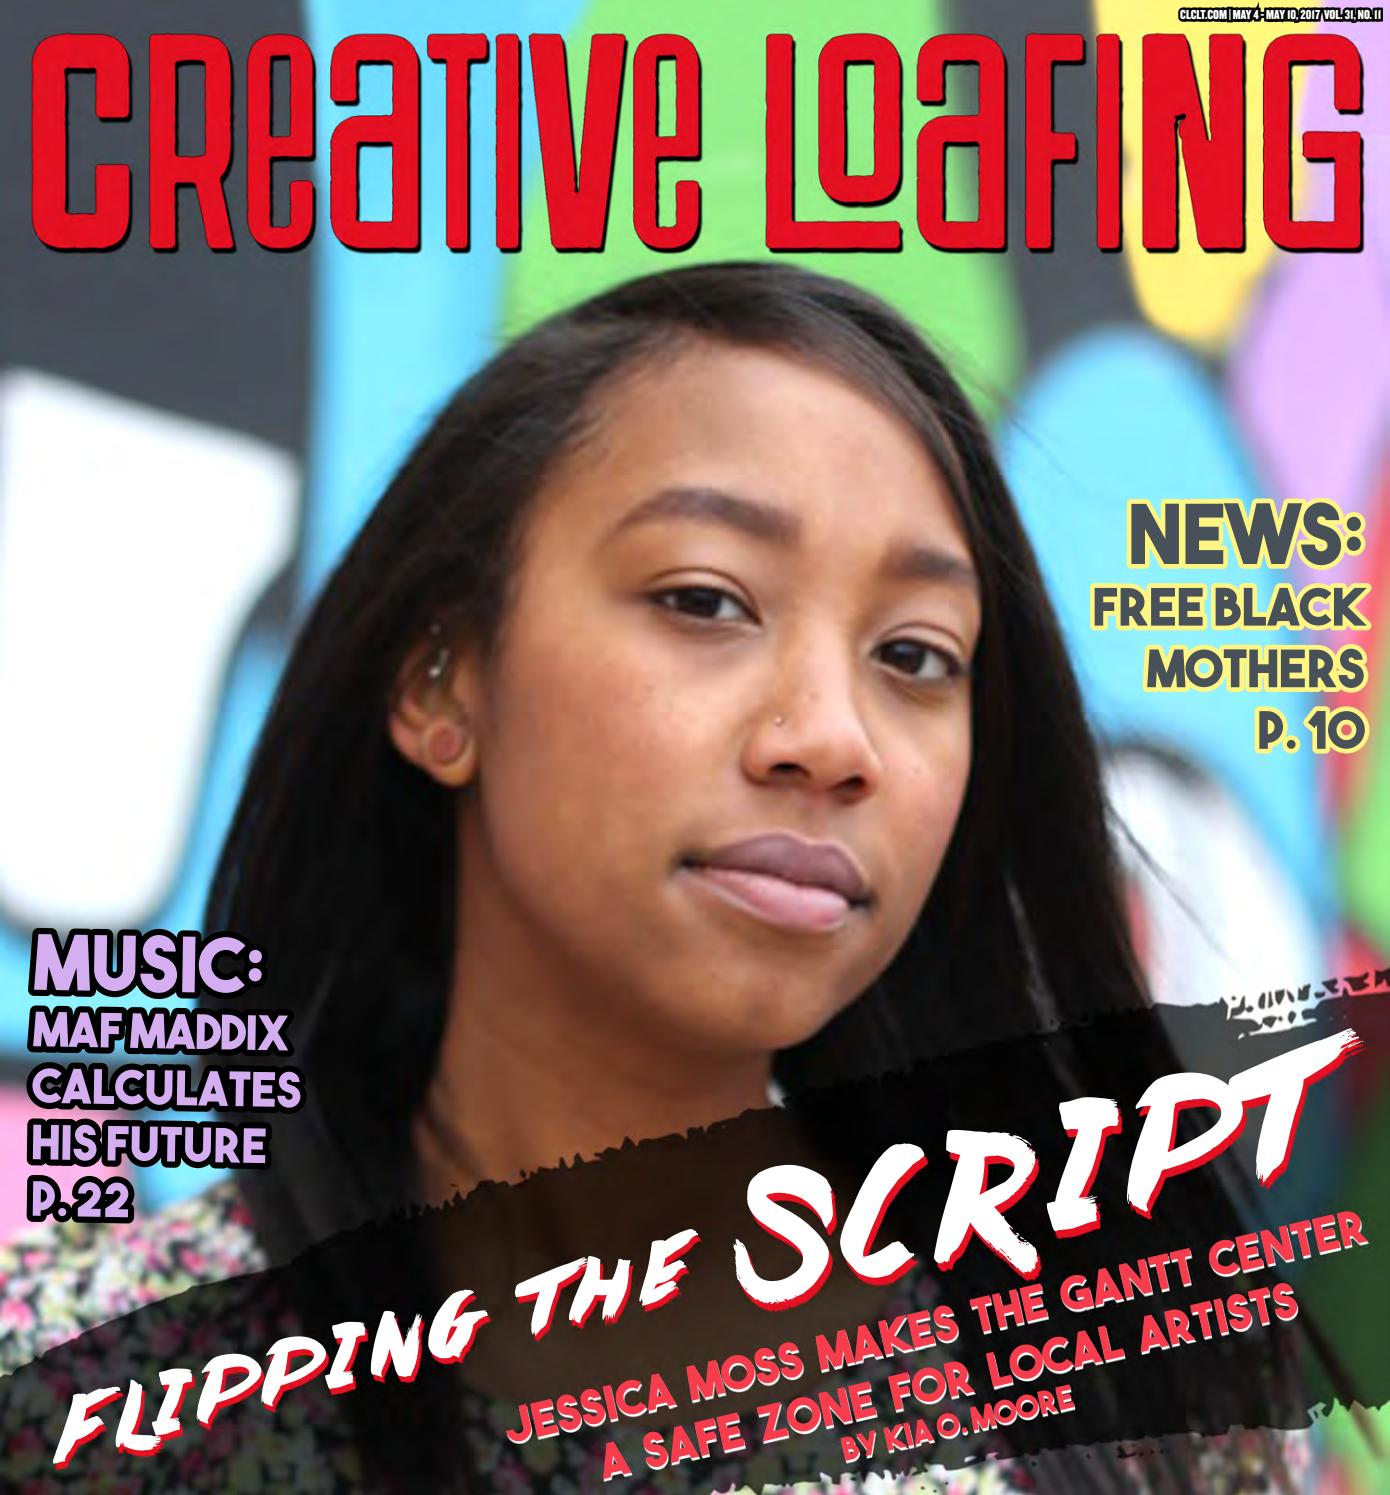 2017 Issue 11 Creative Loafing Charlotte By Onq Structured Wiring Enclosure M S Moran Issuu